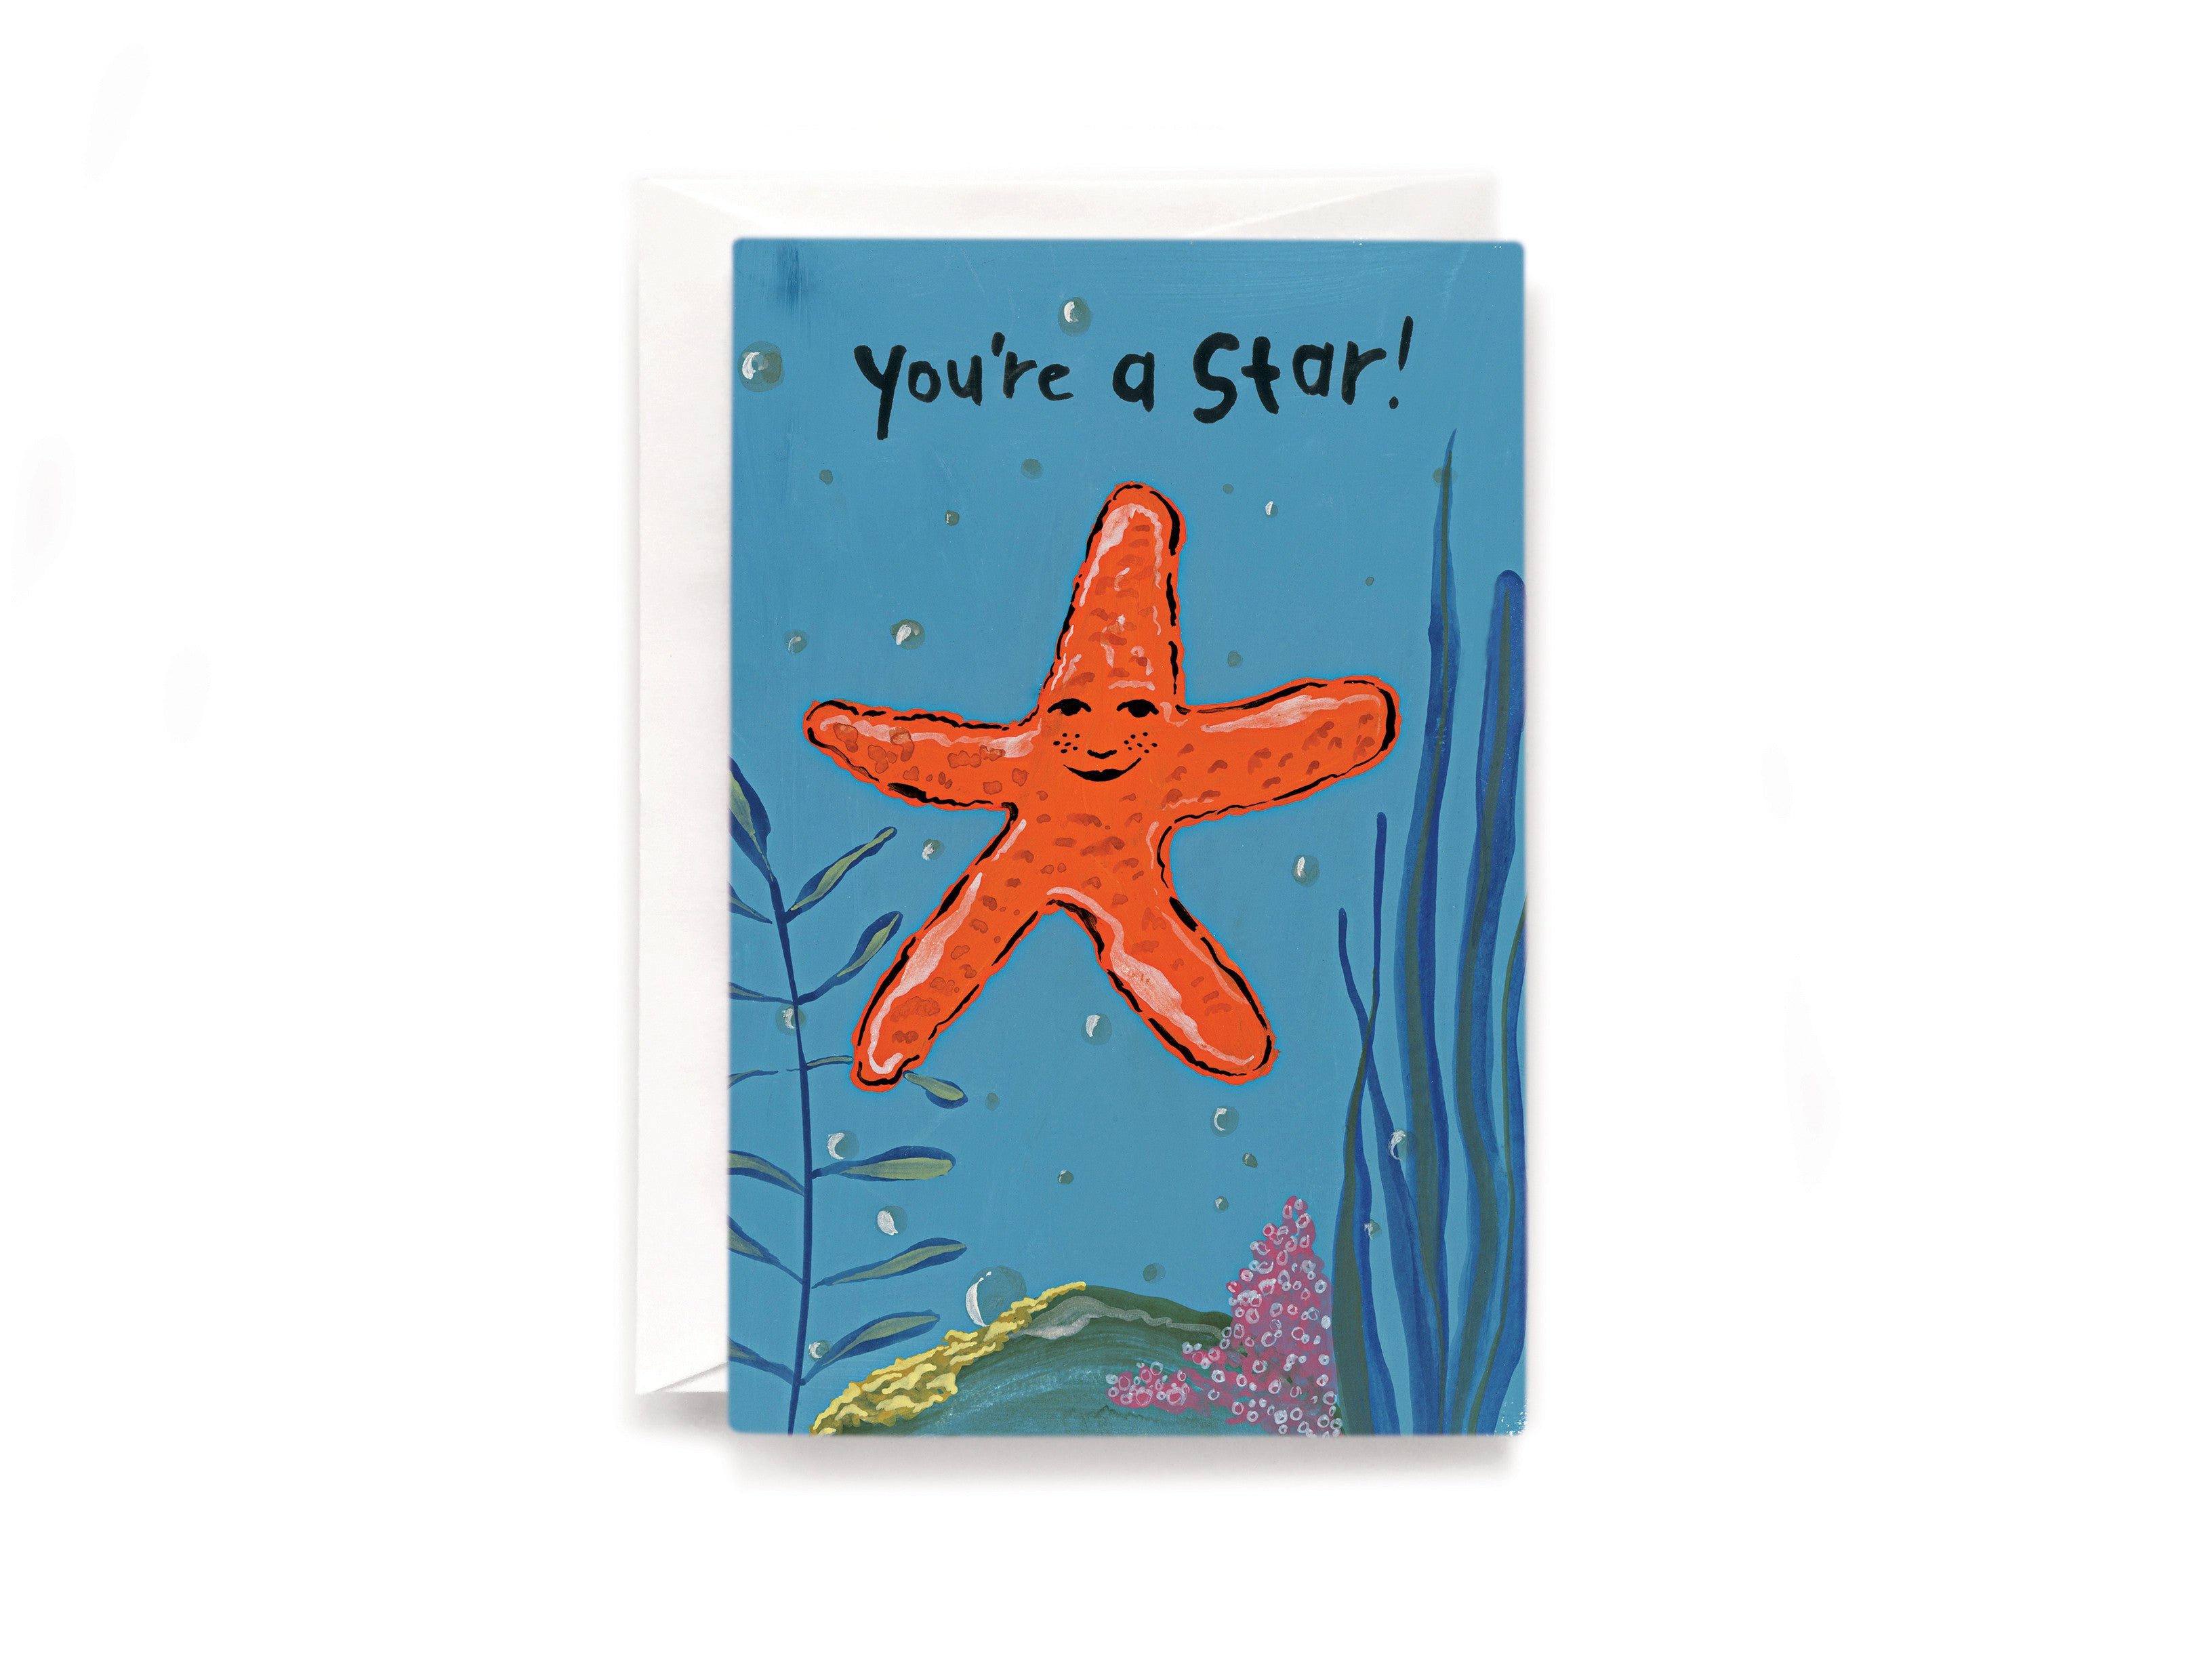 Party bunch co youre a star greeting card youre a star card kristyandbryce Images